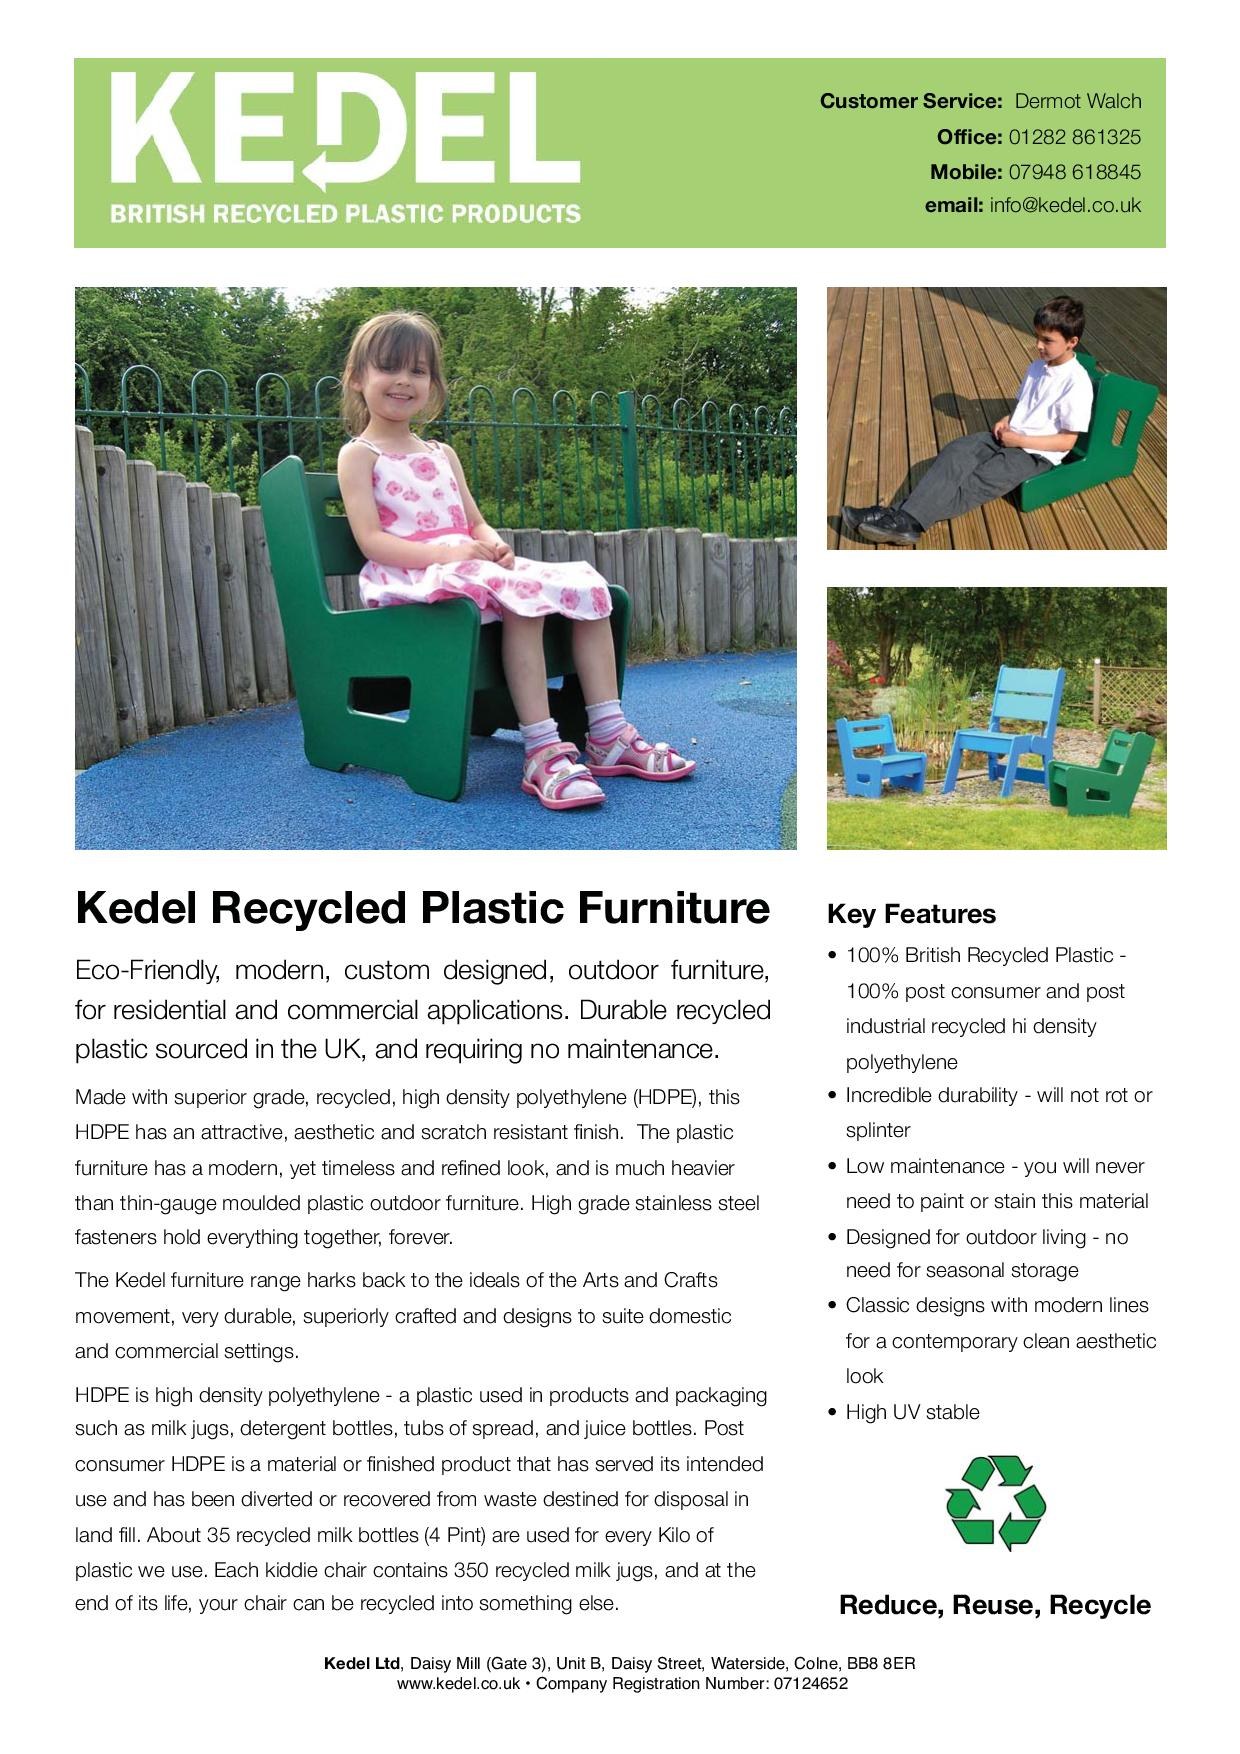 Recycled Plastic HDPE Chair - Key Features Leaflet